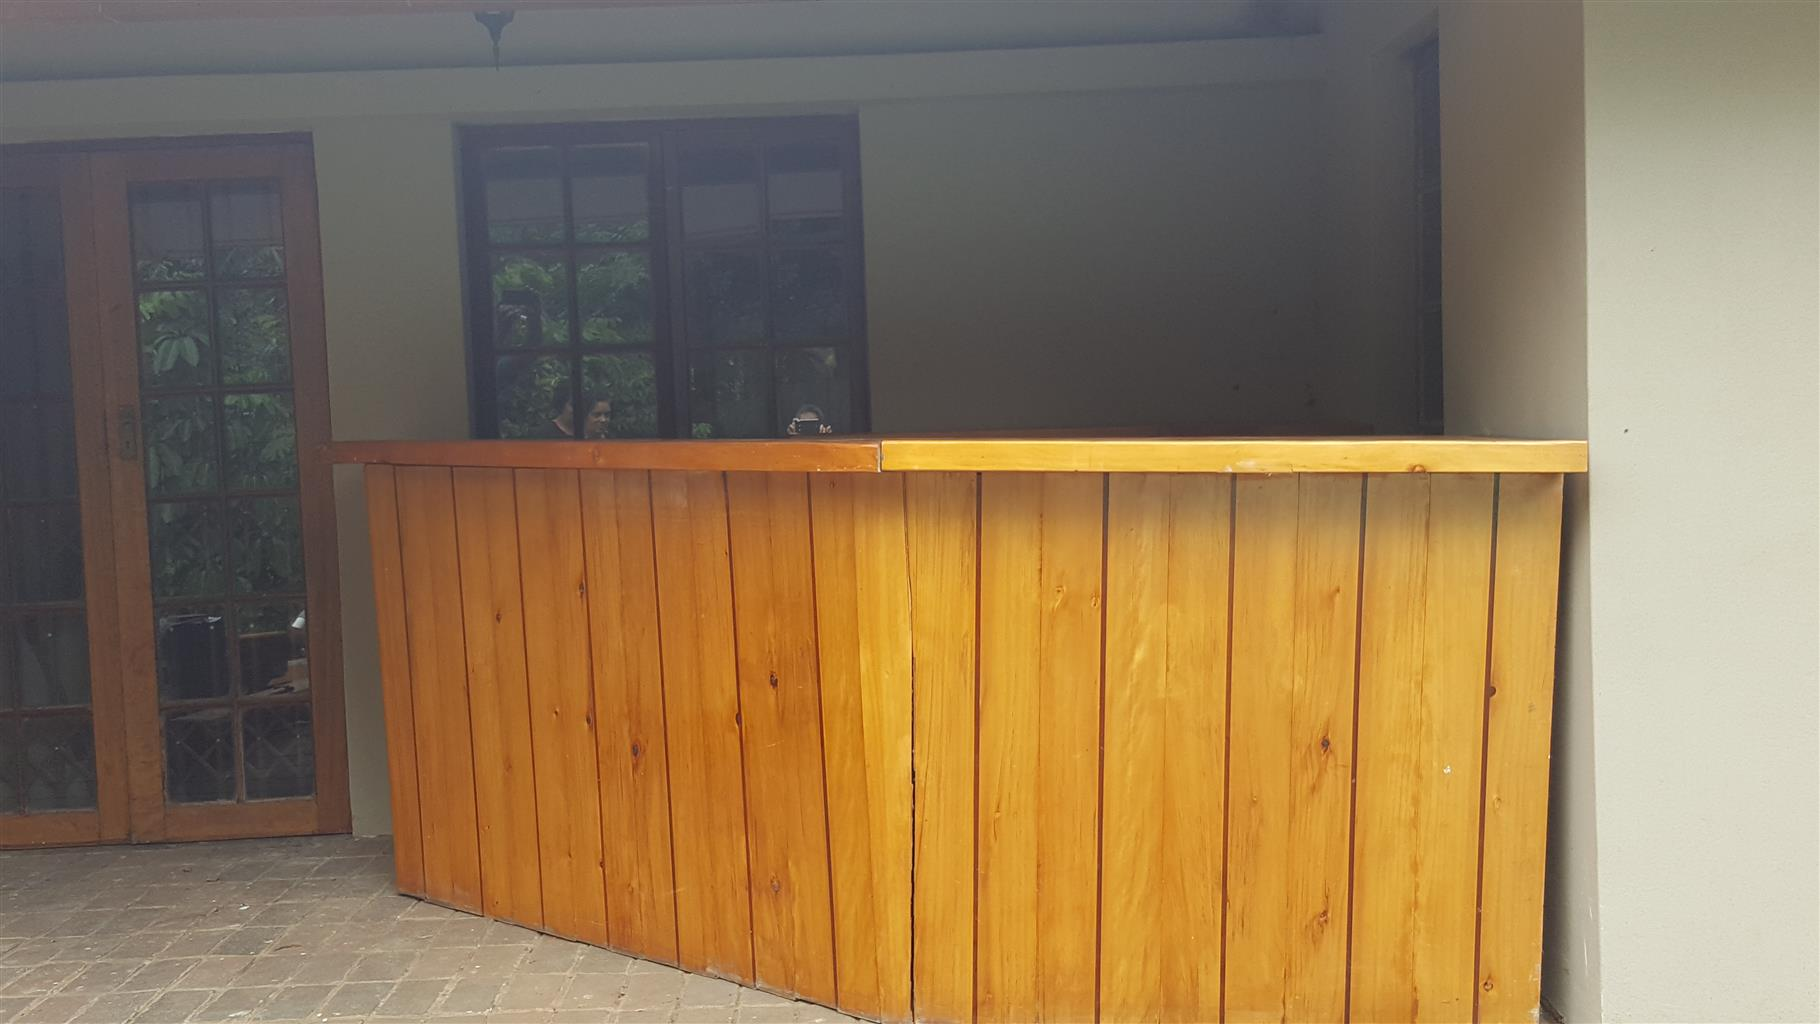 Wooden bar with shelving